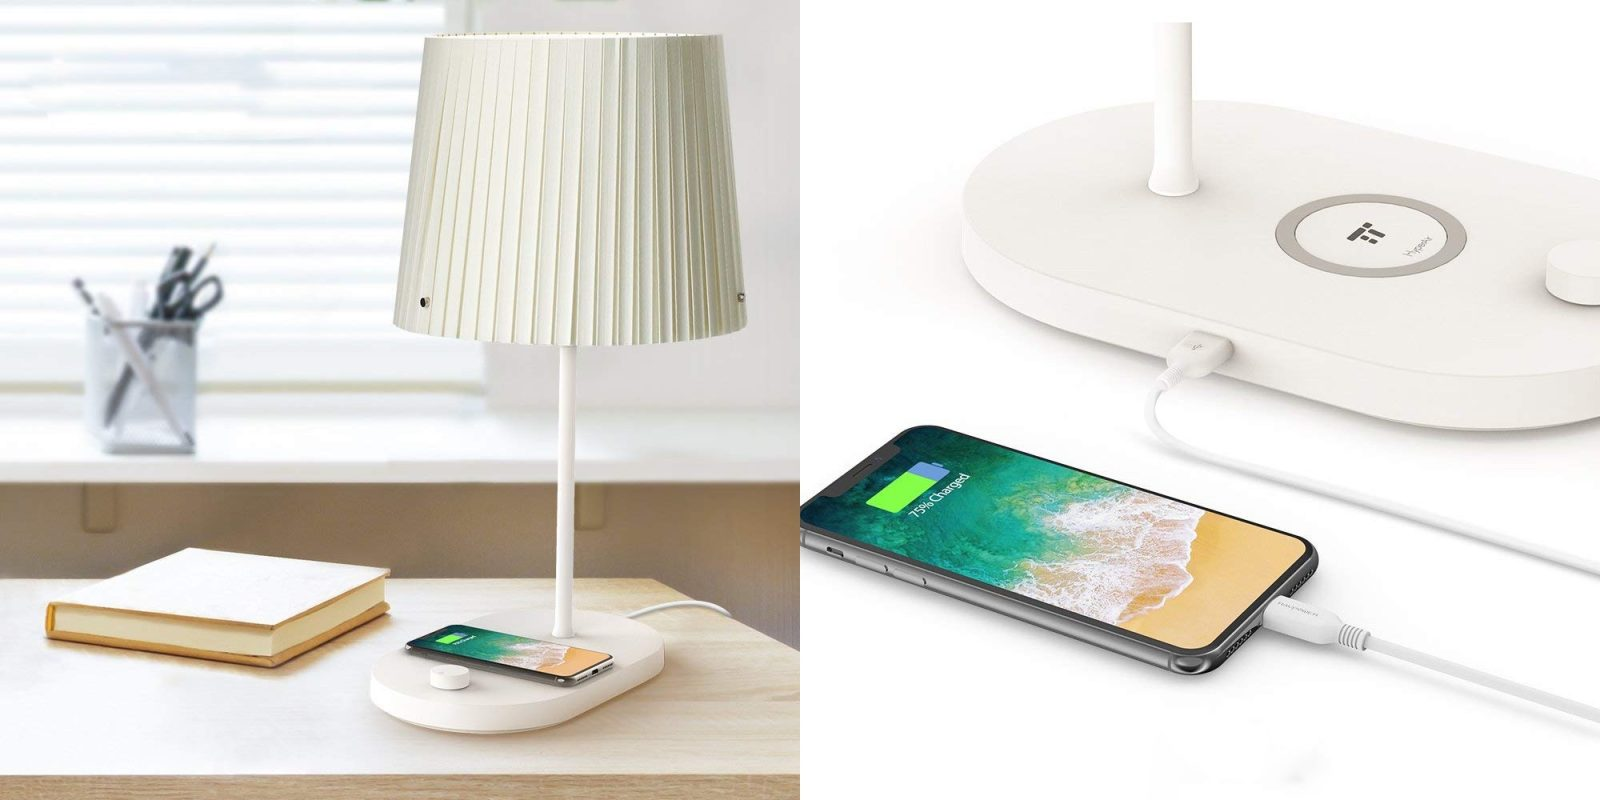 Smartphone Accessories: TaoTronics LED Lamp with 10W Qi Charger $23, more